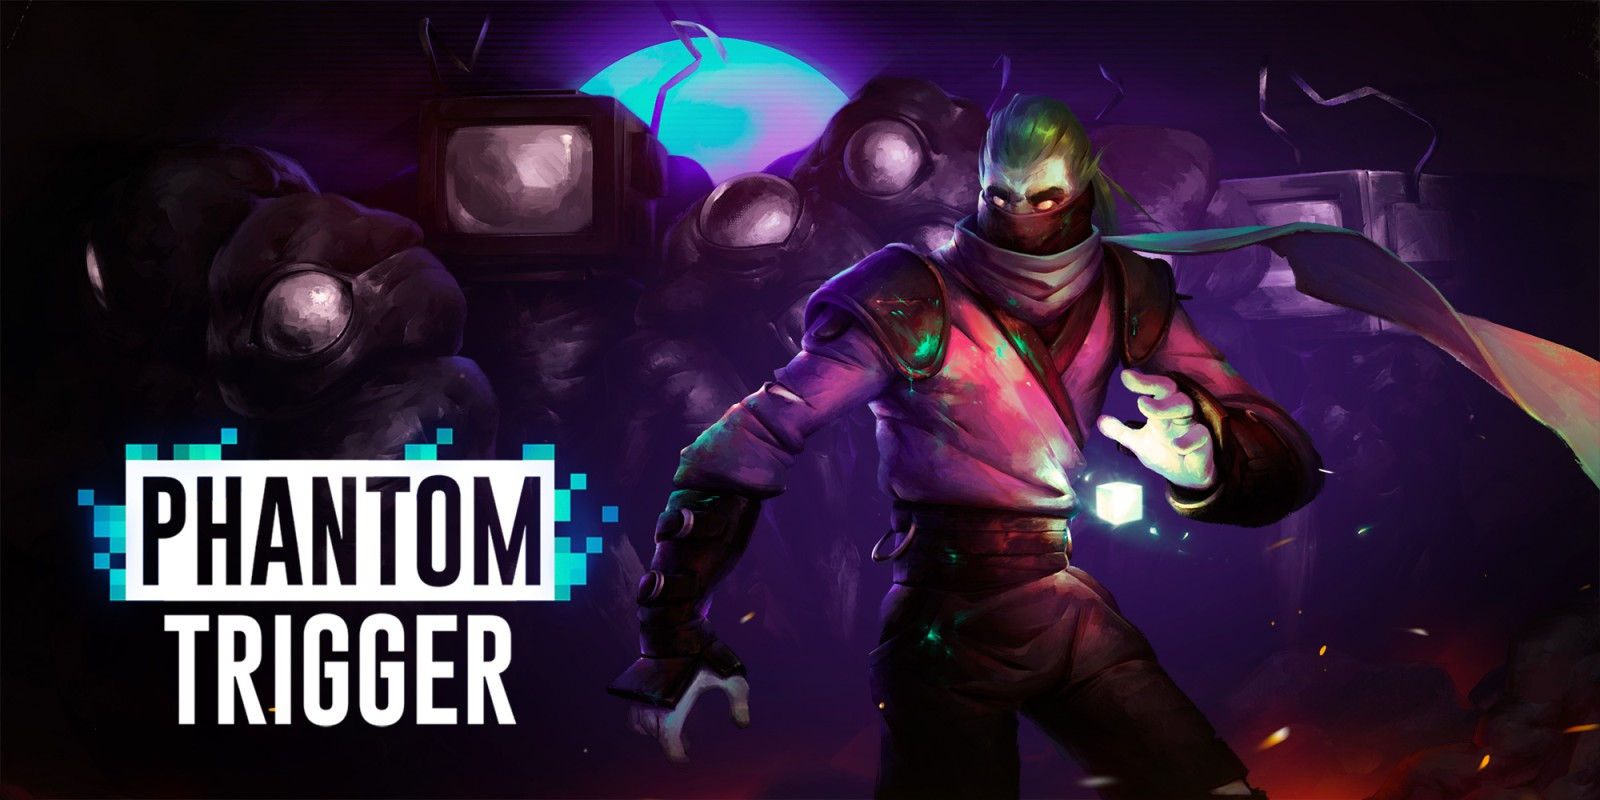 Review - Phantom Trigger